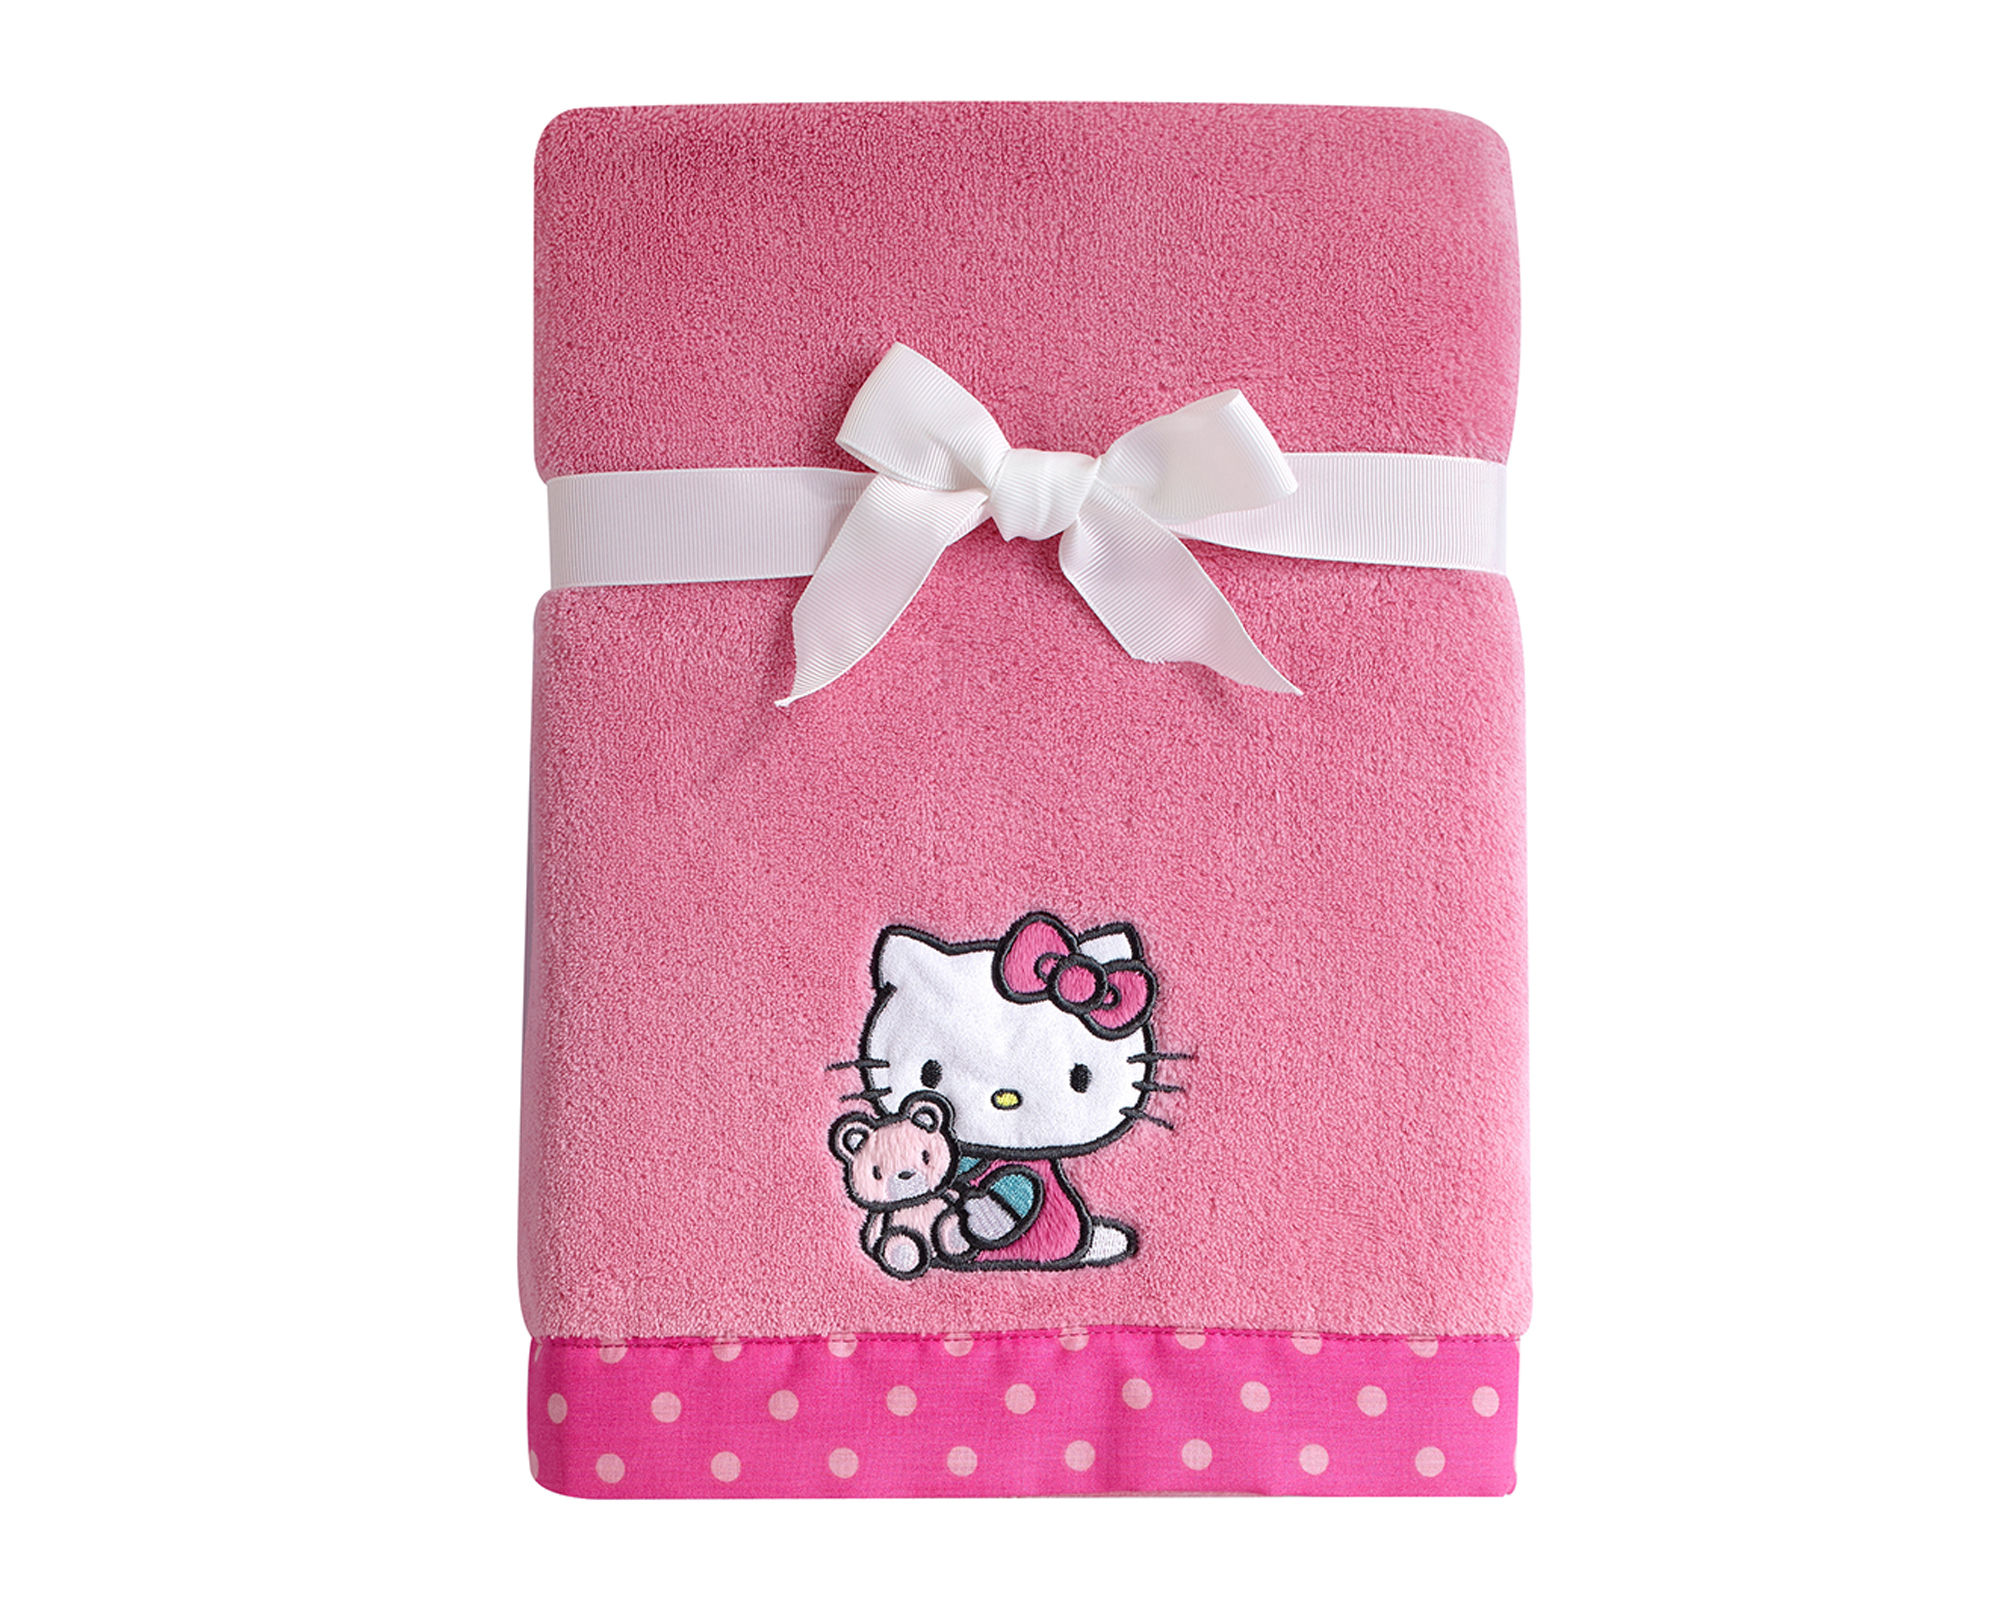 NoJo Sanrio - Hello Kitty Fleece Blanket Comforters